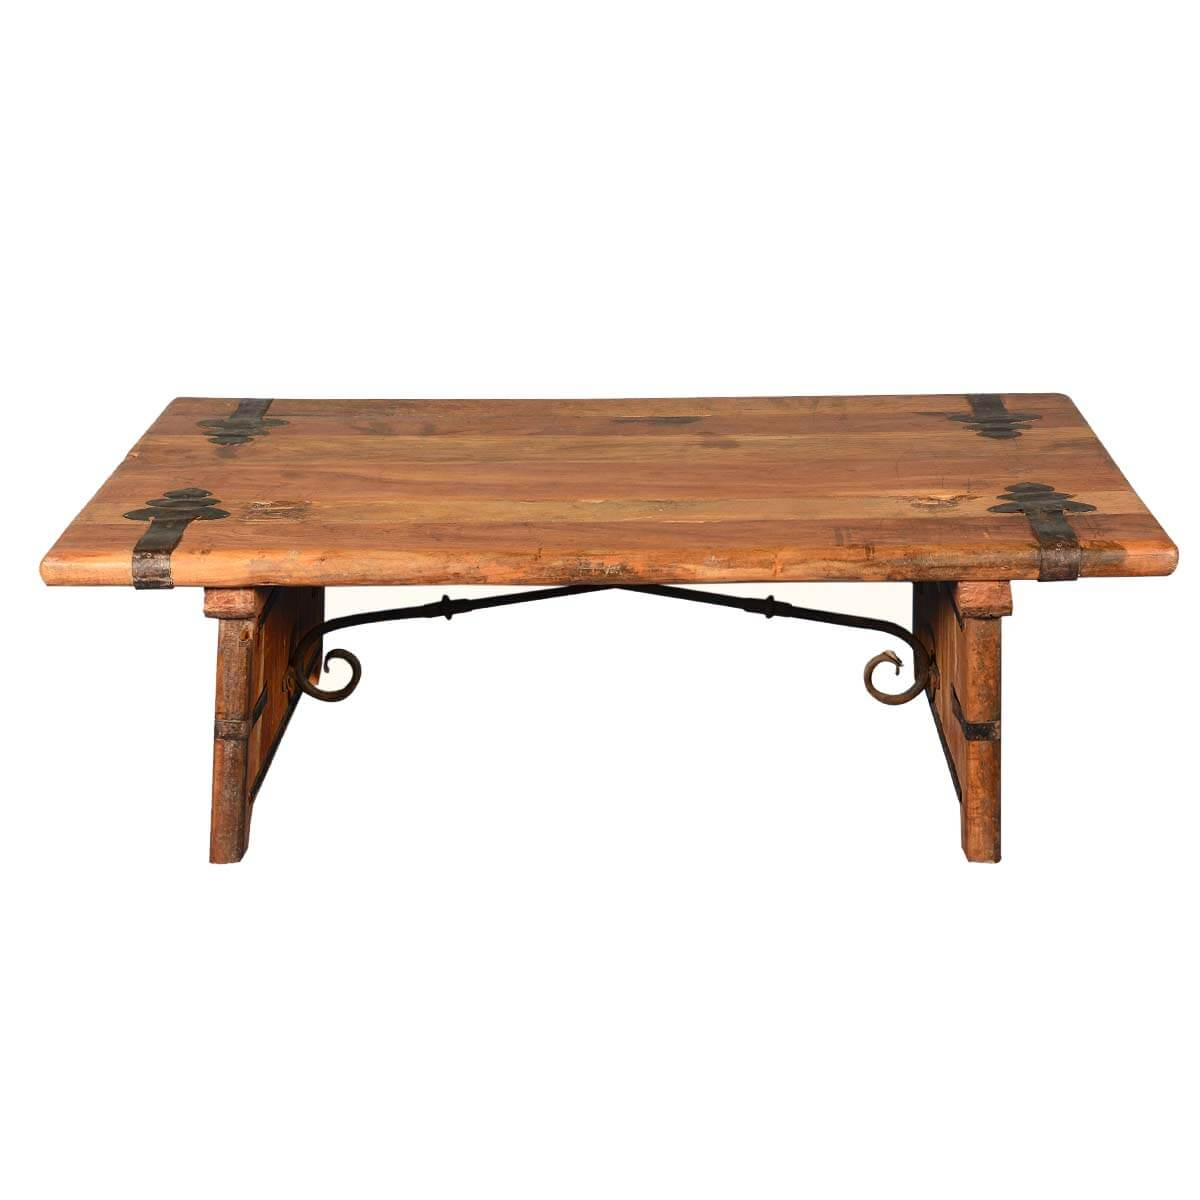 Rustic Reclaimed Wood Wrought Iron Hastings Coffee Table